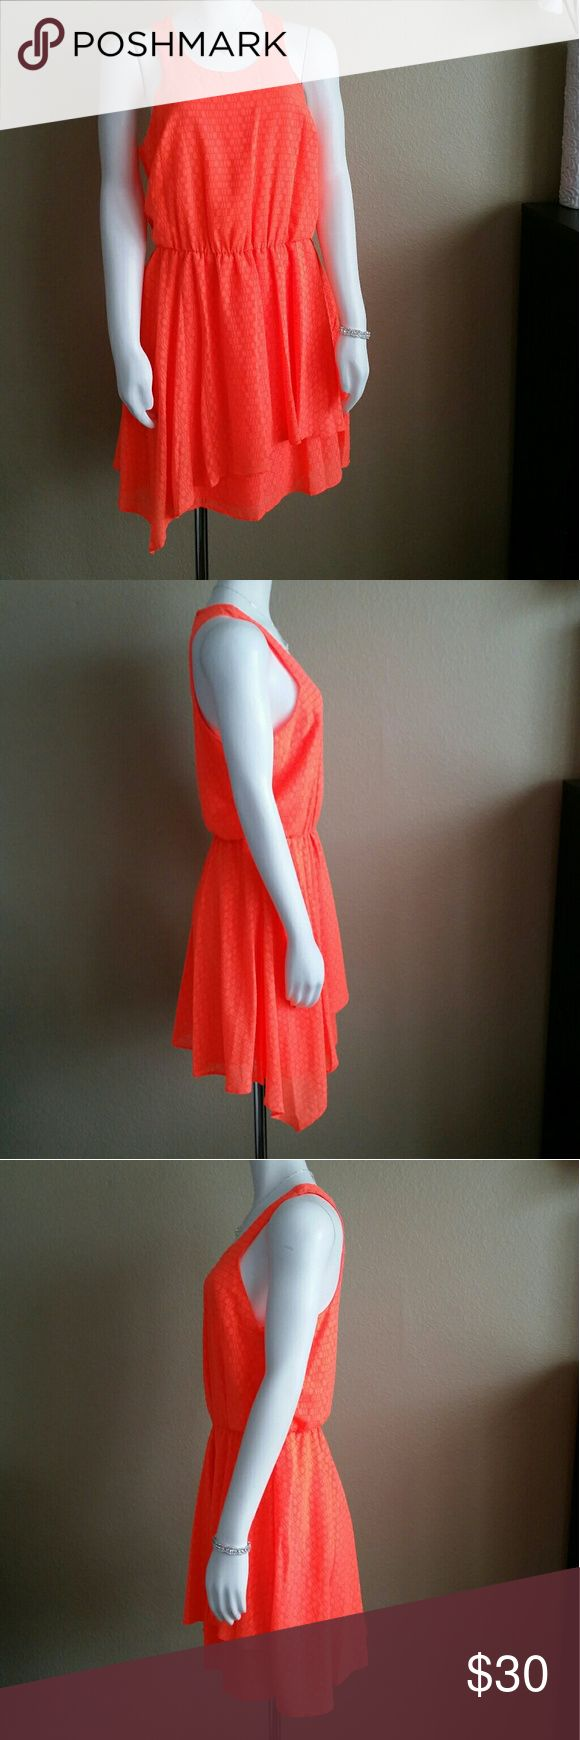 New! GB Neon Orange Asymmetrical Dress Neon orange dress with elastic waist. 100% polyester textured fabric (see last picture). Size L Juniors. GB Dresses Asymmetrical